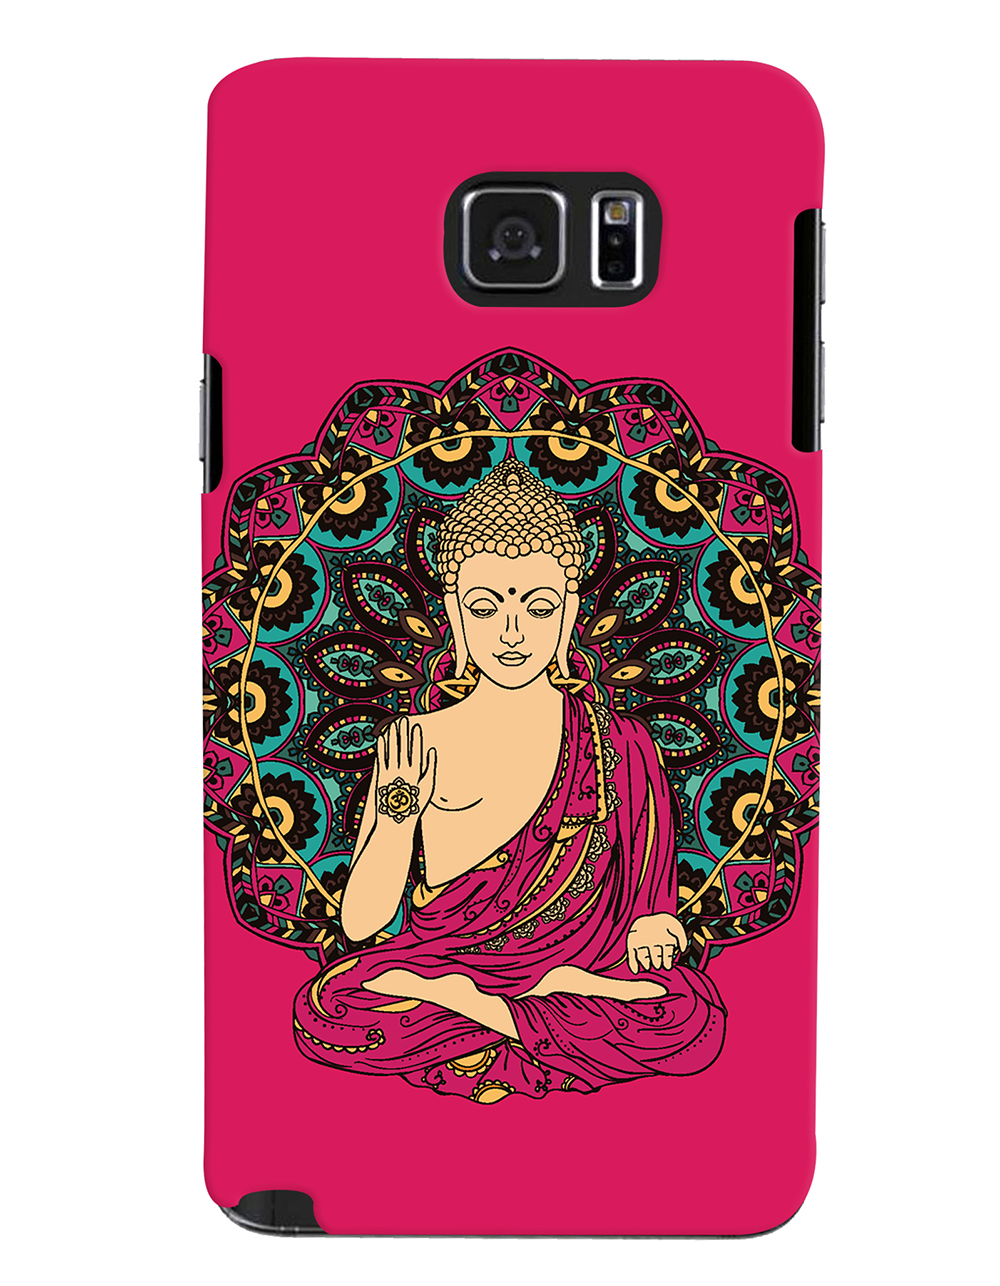 Buy Lord Buddha Devotional Printed Designer Back Cover For Samsung Galaxy Note 5 Mobile Phone